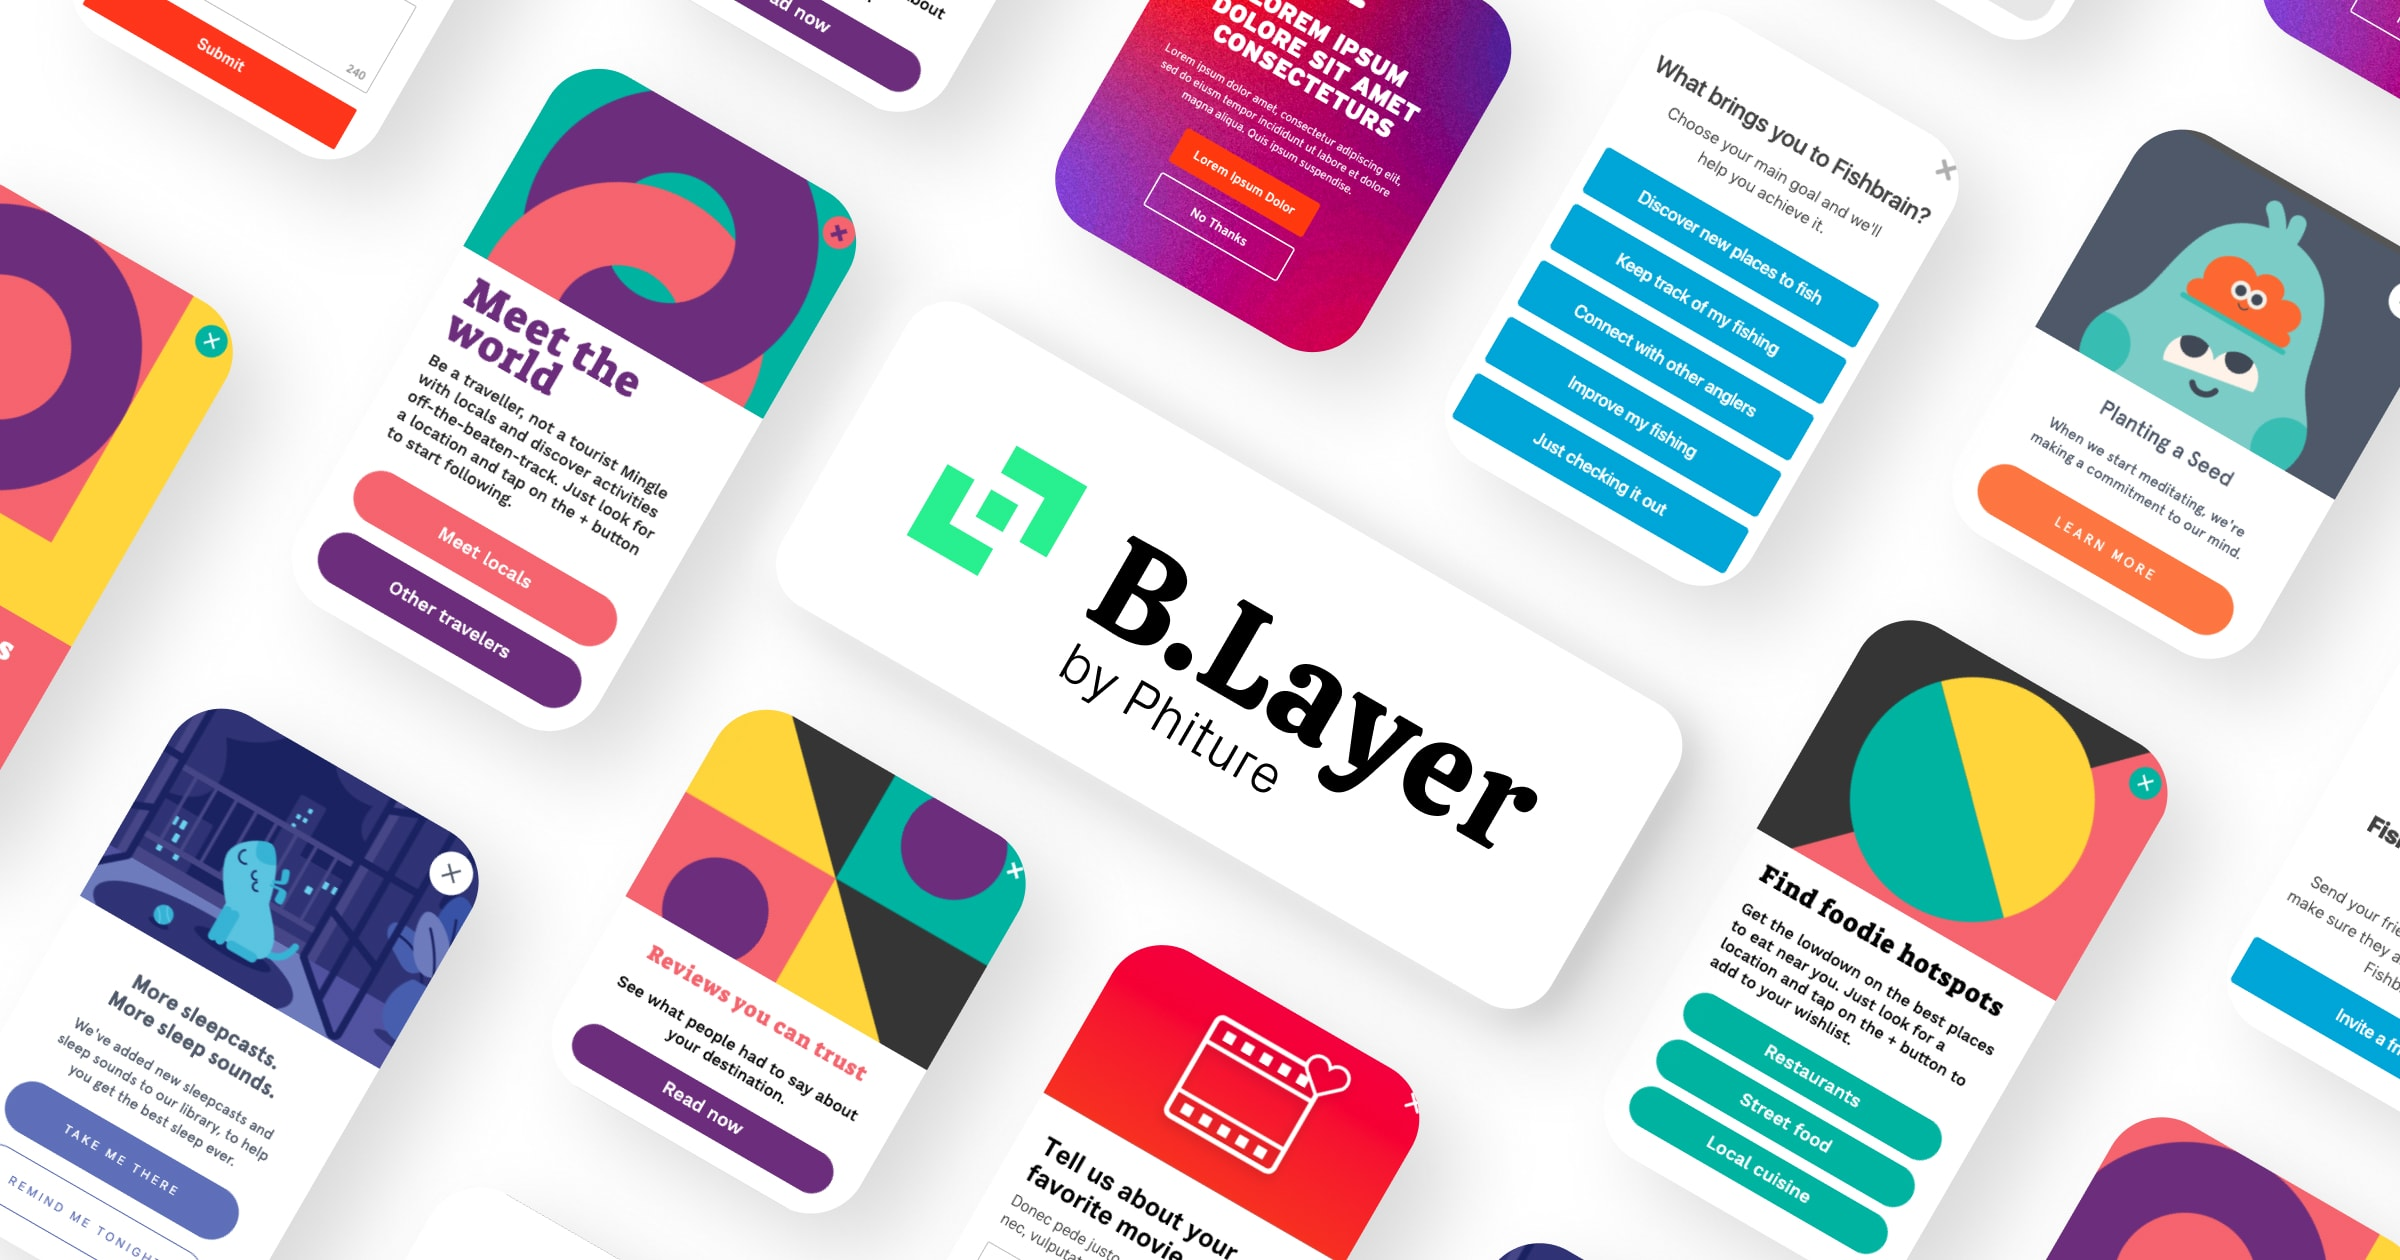 blayer in-app messages